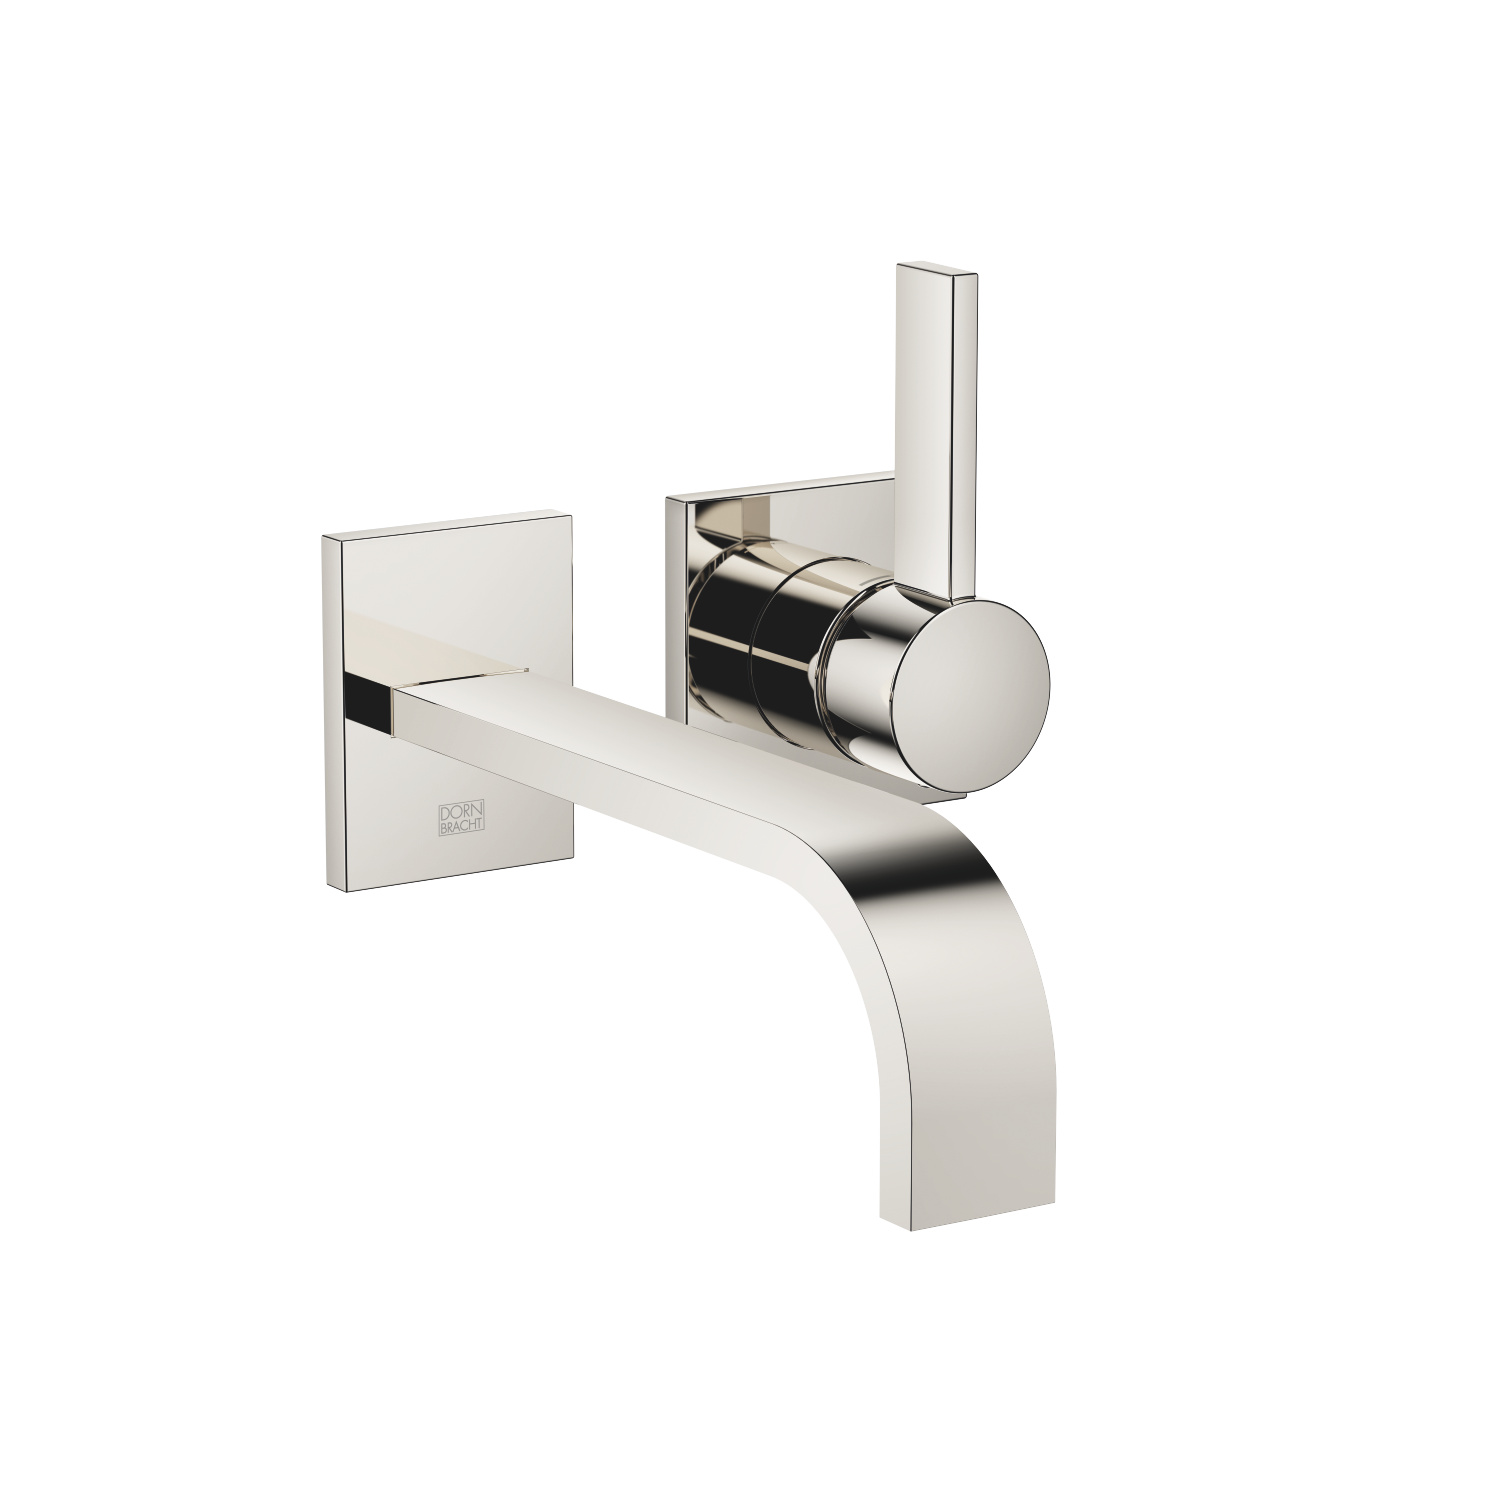 Wall-mounted single-lever mixer without drain - platinum